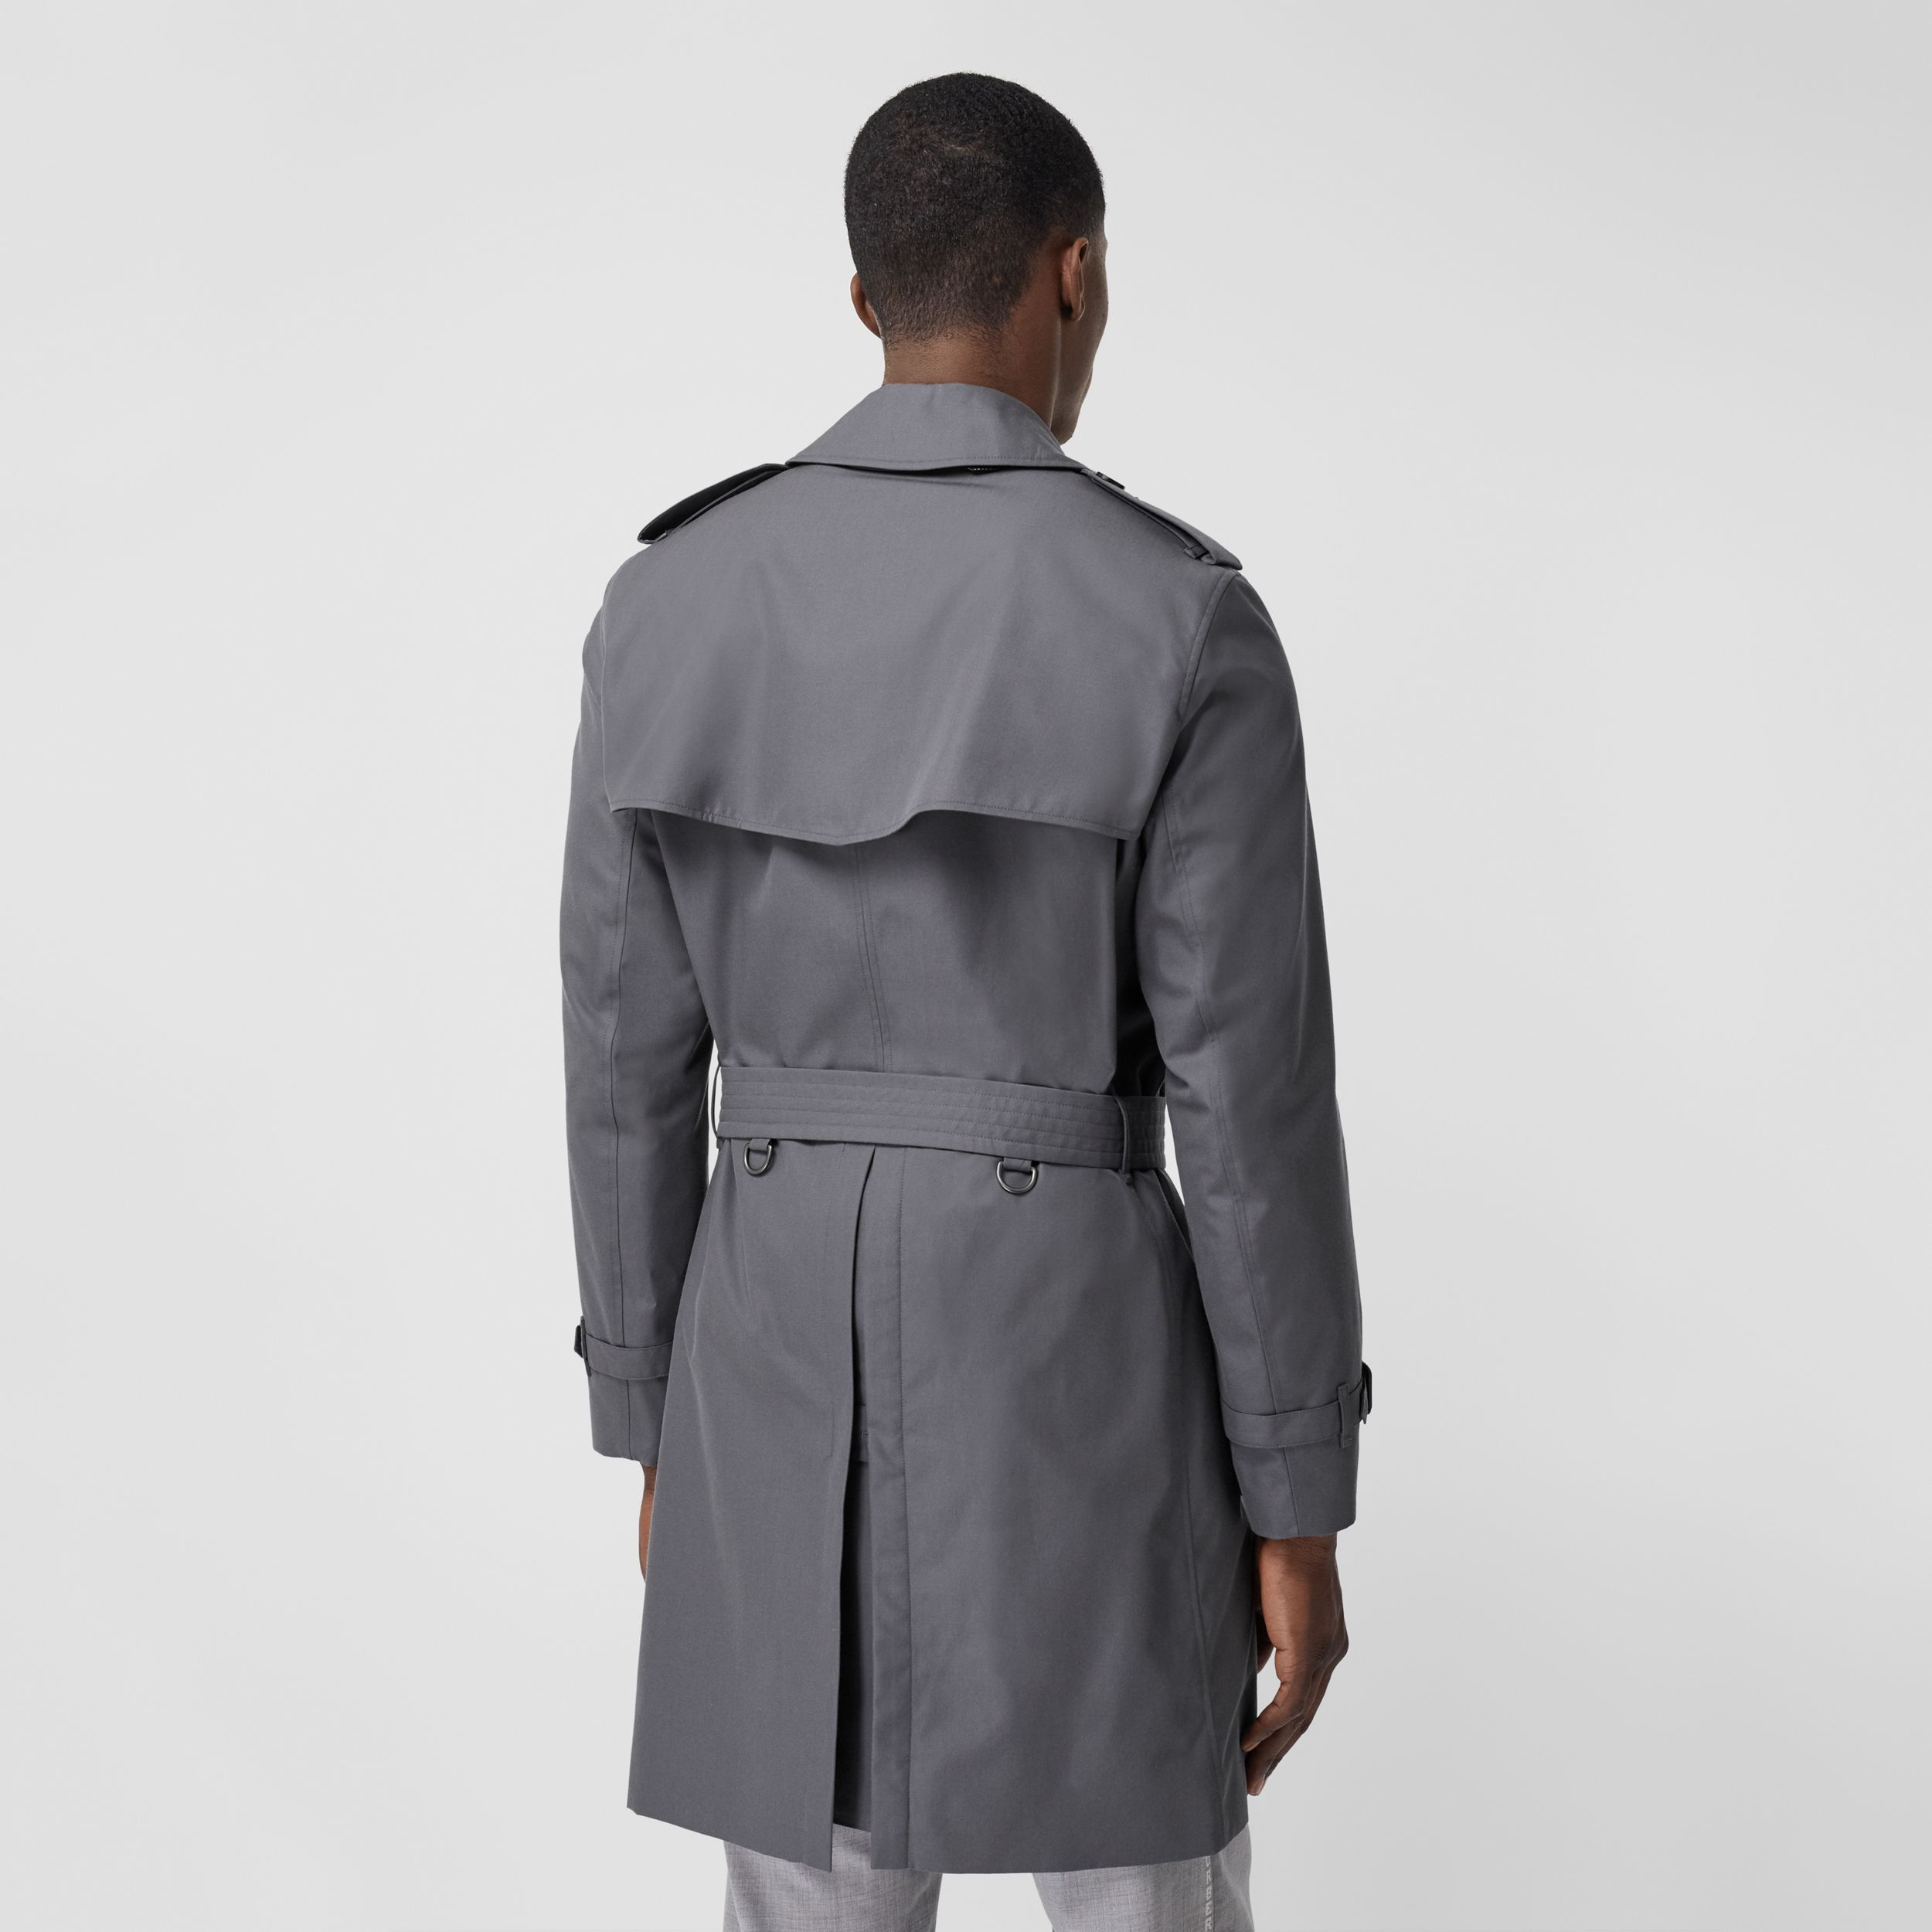 The Mid-length Chelsea Heritage Trench Coat in Mid-grey - Men | Burberry United Kingdom - 3